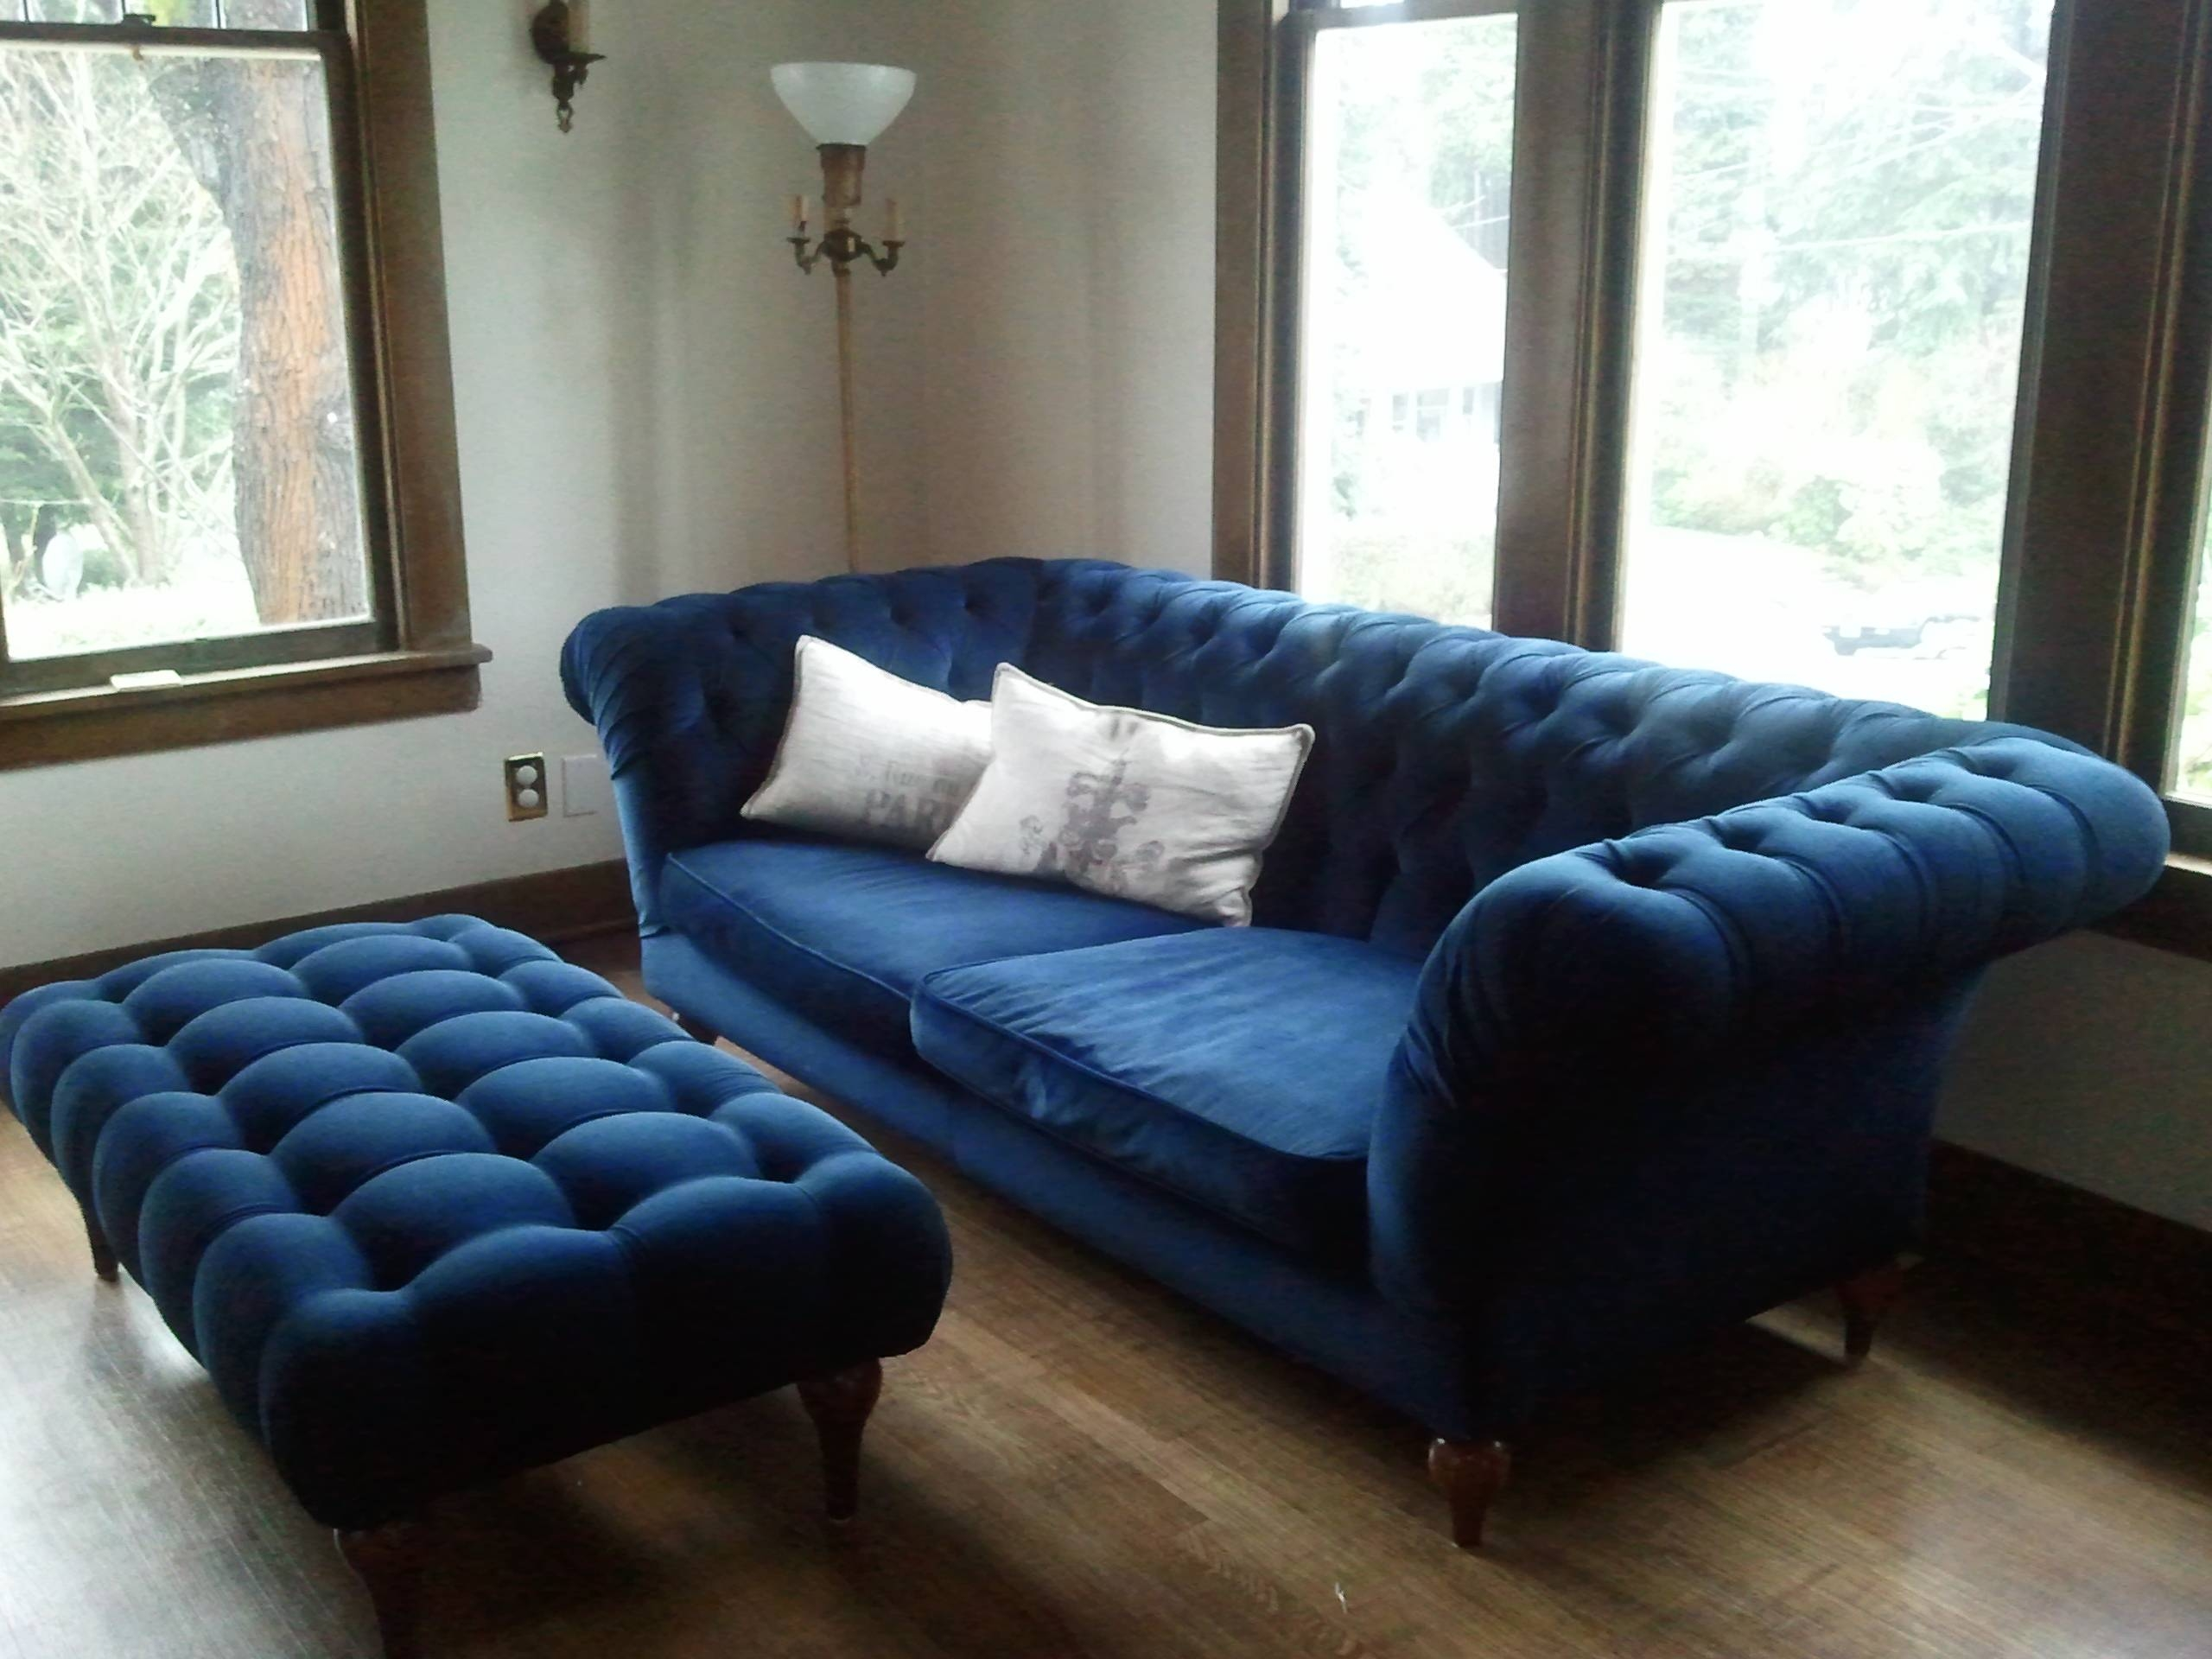 Simple Living Room Design With Dark Blue Velvet Tufted Sofa With for Blue Velvet Tufted Sofas (Image 12 of 15)